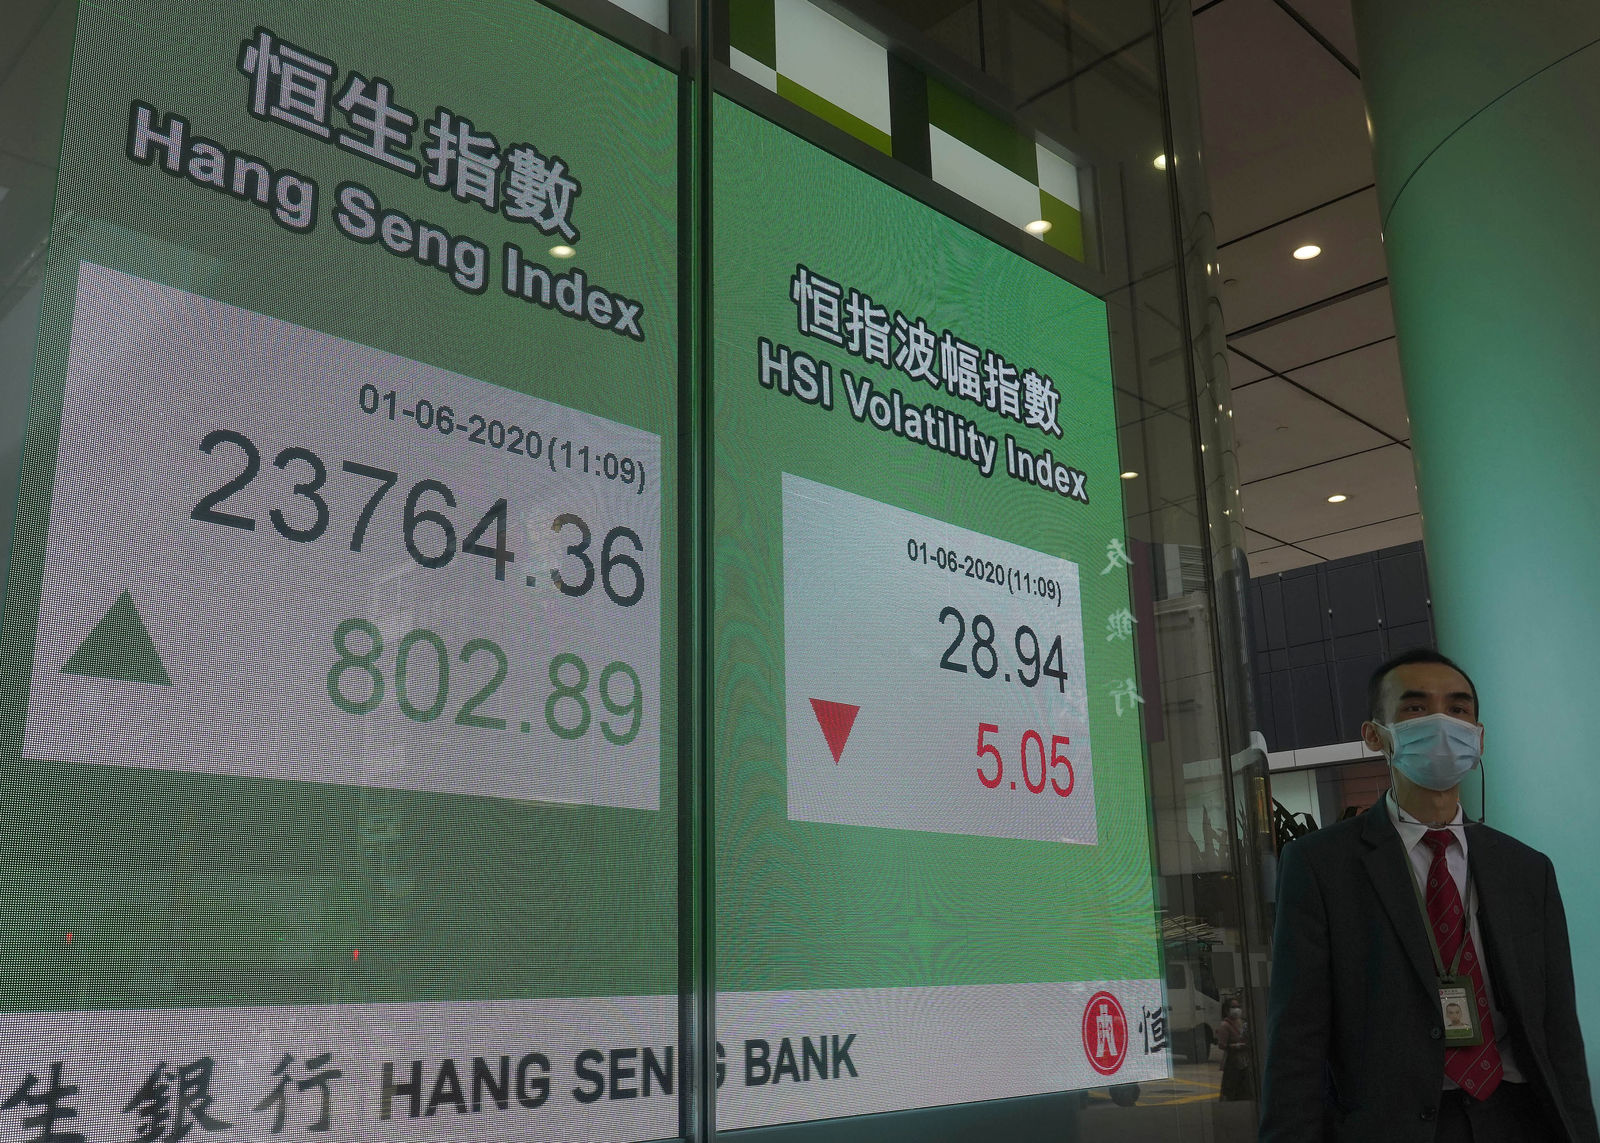 A man wearing a face mask walks past a bank electronic board showing the Hong Kong share index at Hong Kong Stock Exchange Monday, June 1, 2020. Asian stock markets have rebounded after U.S. President Donald Trump avoided reigniting a trade war with China amid tension. (AP Photo/Vincent Yu)